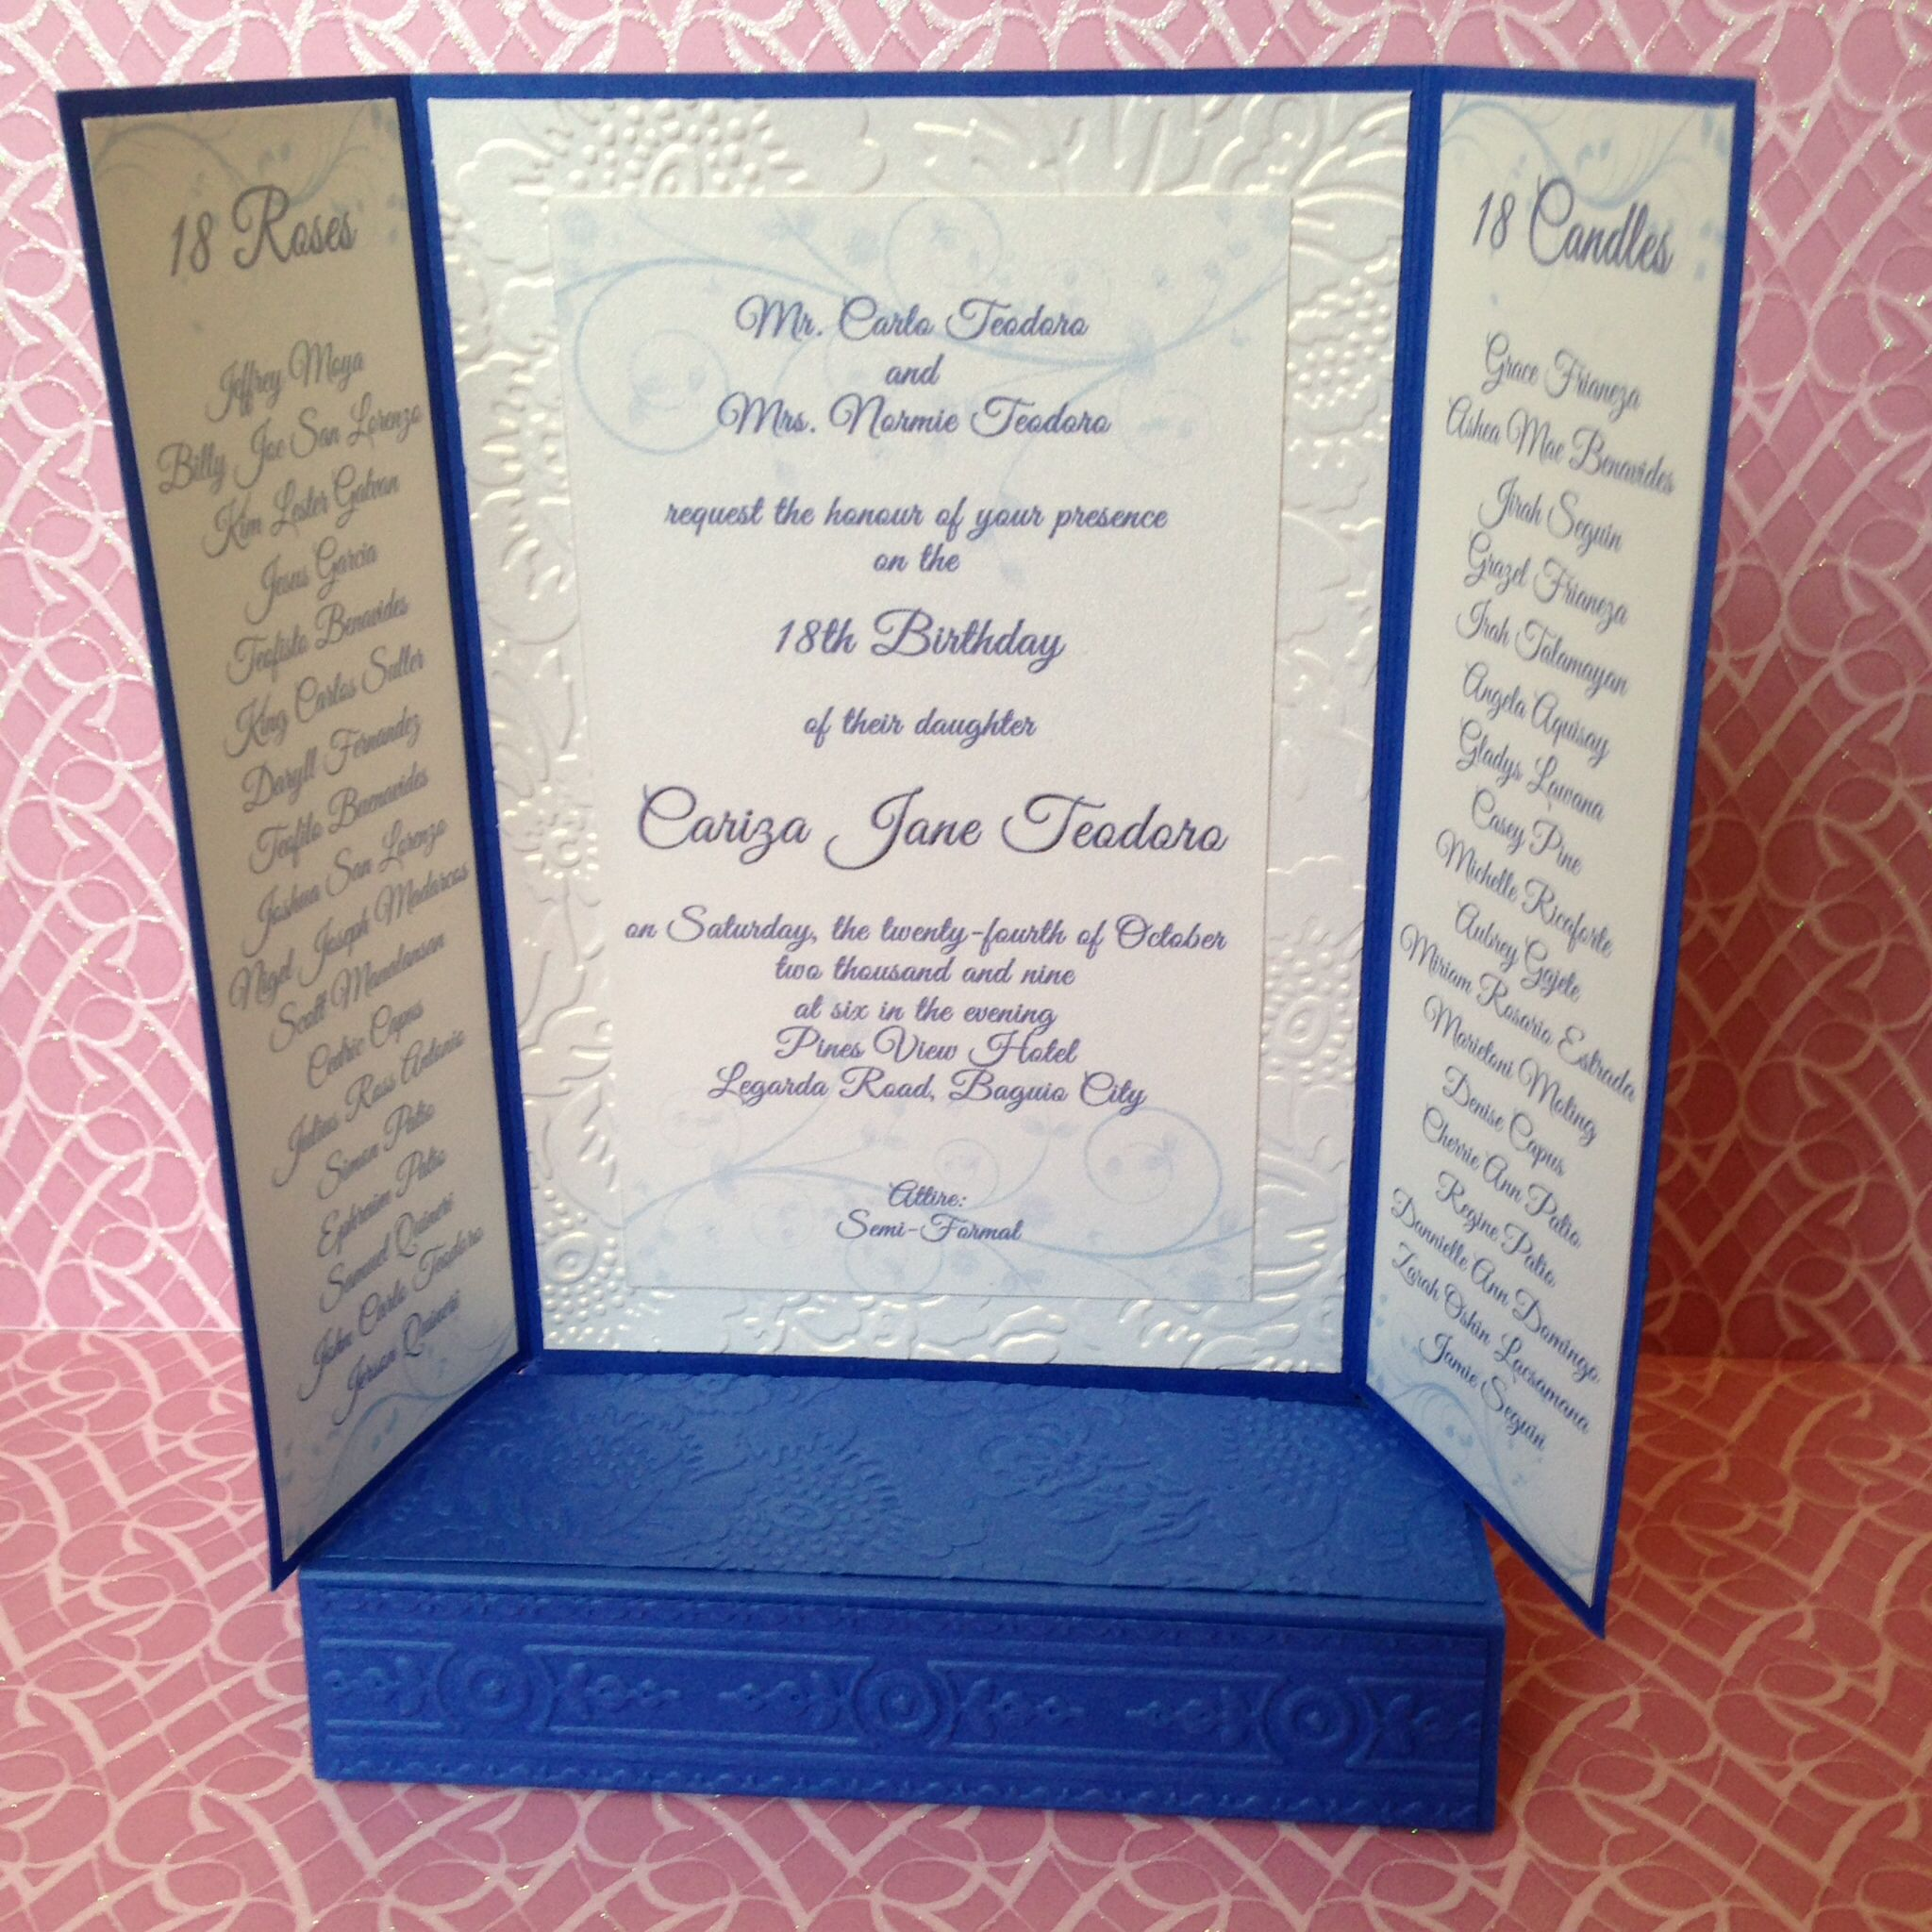 Debut invitation  Invitations, Simple invitation, Debut